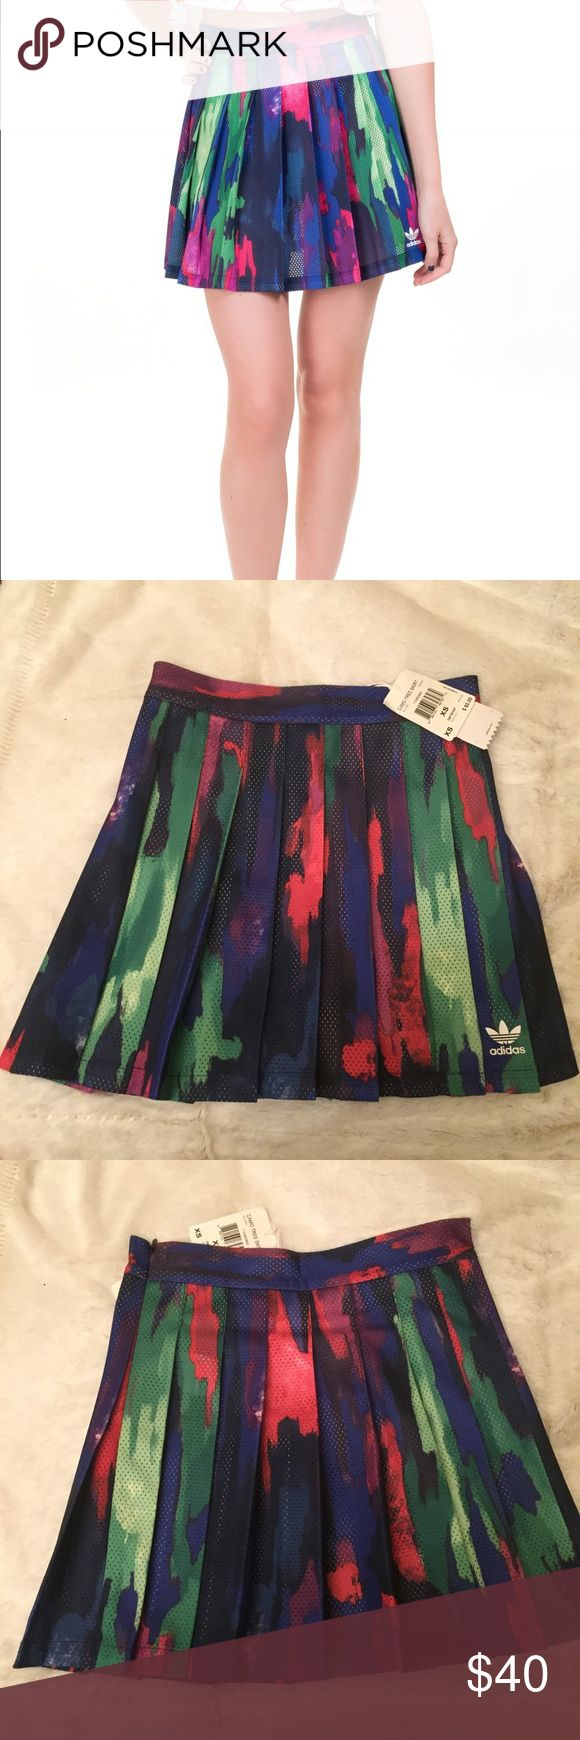 """Adidas Originals Pharrell Camo Tree Skirt New with tags size XS. Never worn. Excellent condition. Pharrell Williams for Adidas Camo Tree skirt. Has colors of purple, pink, green. Multi color. Perfect for tennis. Size zipper.  Techno fabric. Pleated detailing. Logo on front bottom of skirt. Unlined.  Composition: 100% Polyester Flat lay measurement: 12"""" waist. 15"""" Length adidas Skirts Mini"""